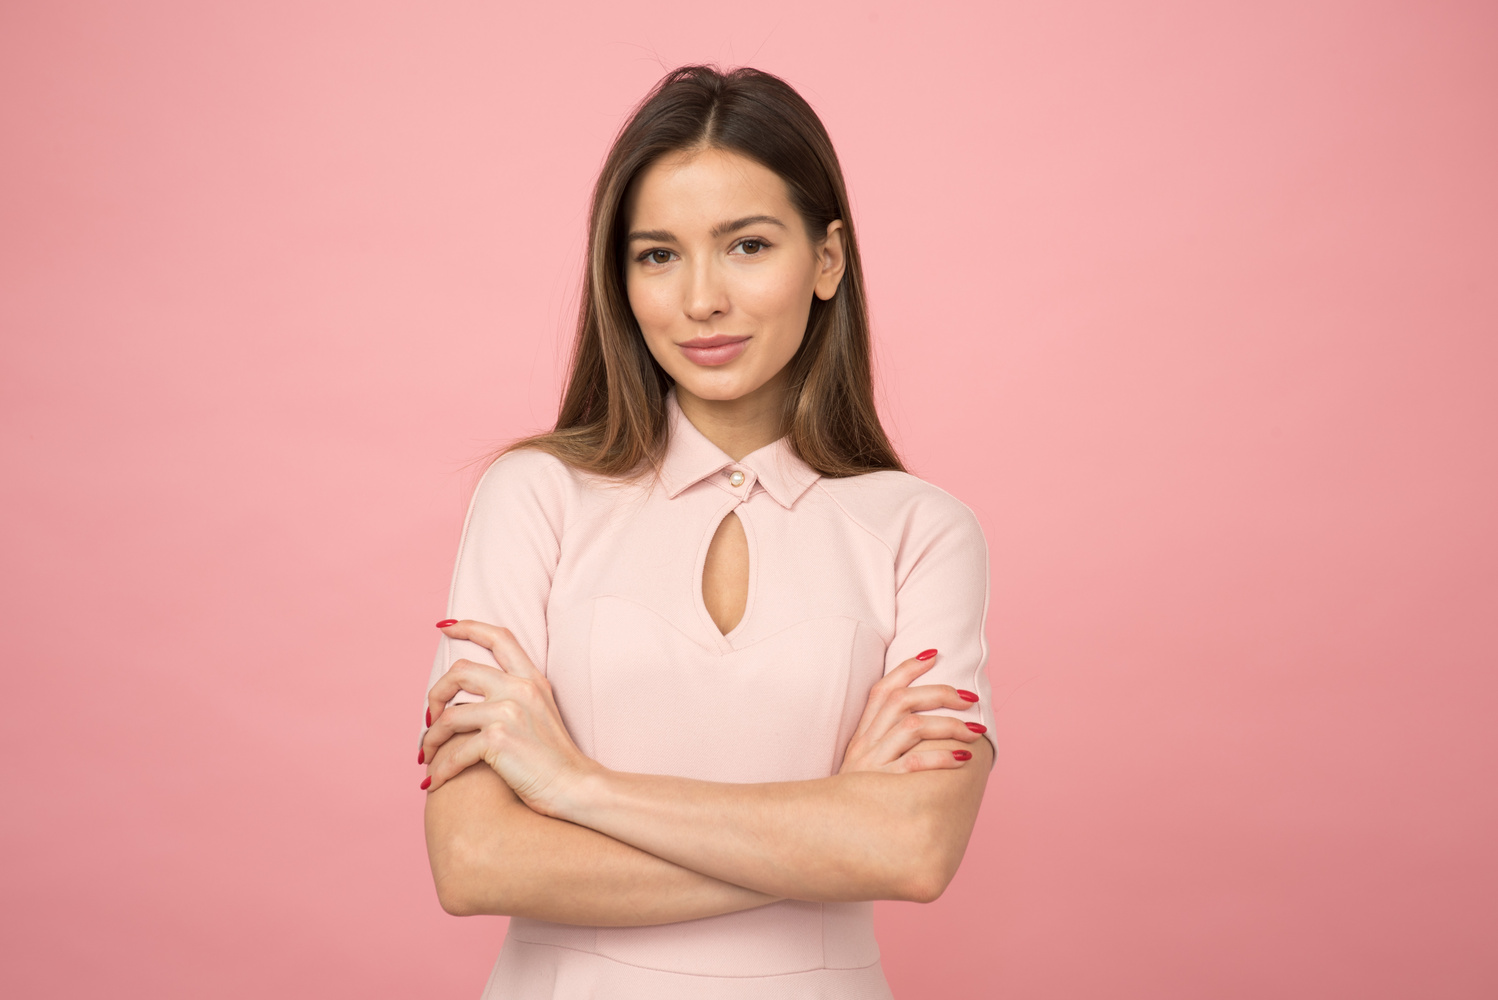 Beautiful woman on pink background by Ivan Boyko